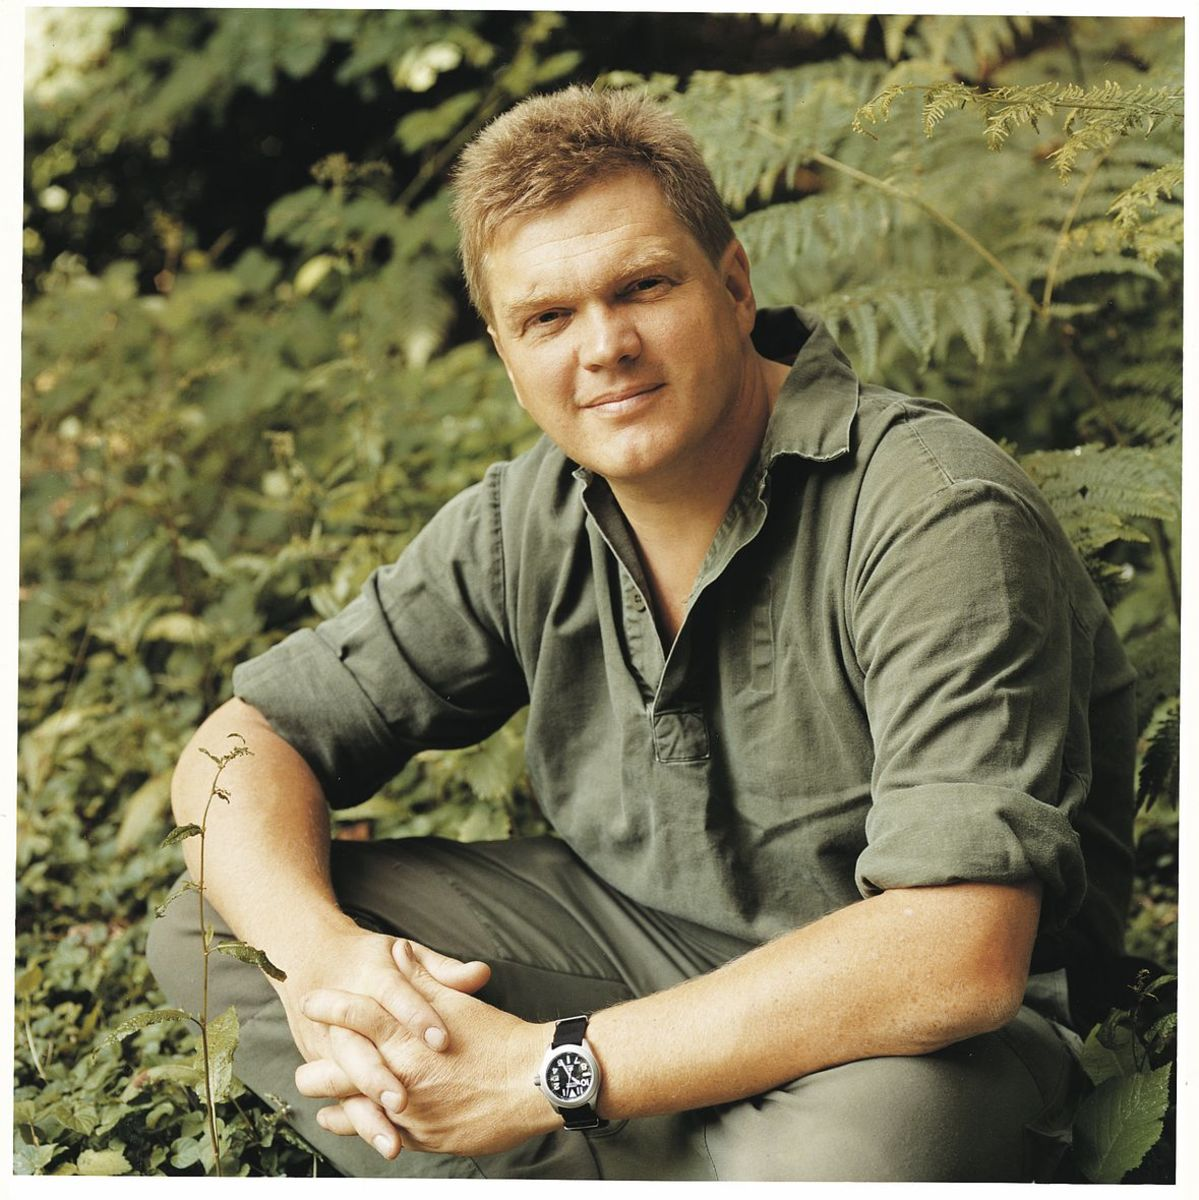 Ray Mears - bigger in the UK than USA but he's all man!